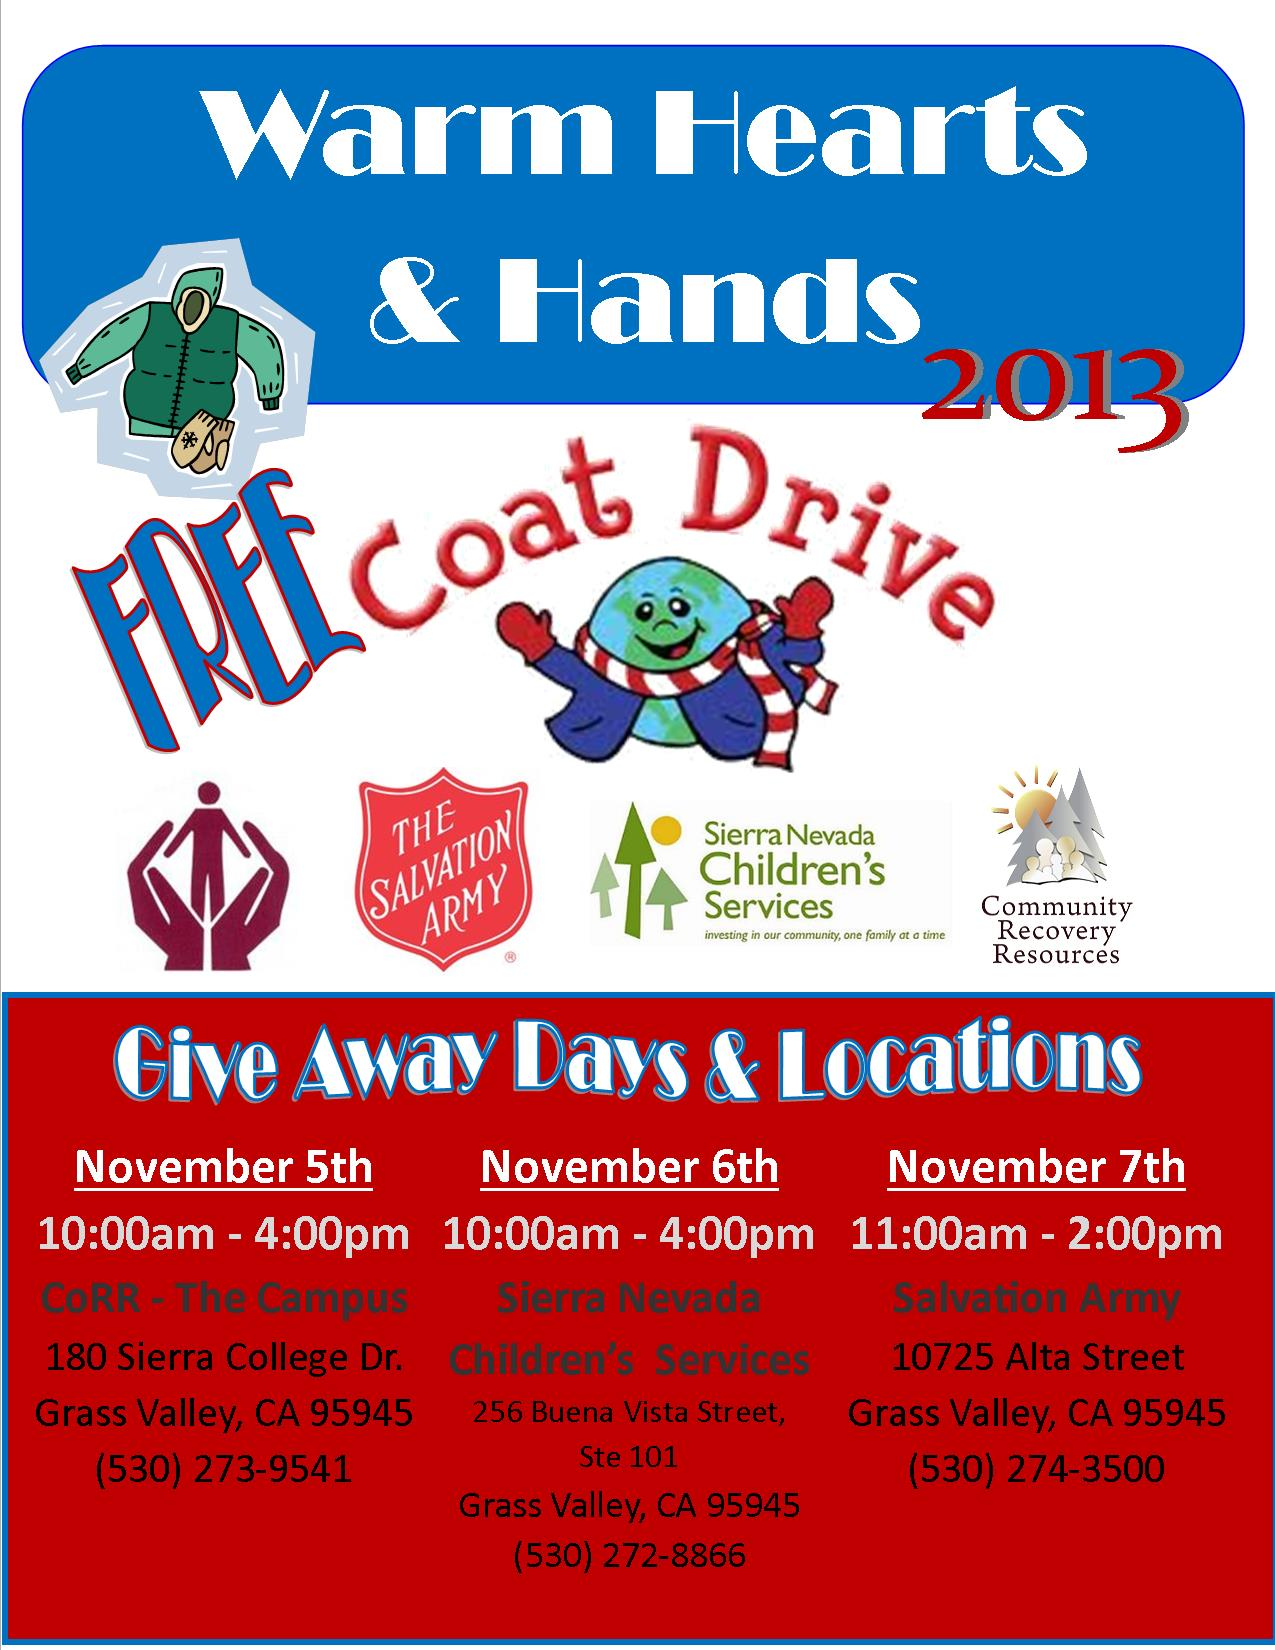 Coat Drive Flyer FINAL blast | Community Recovery Resources